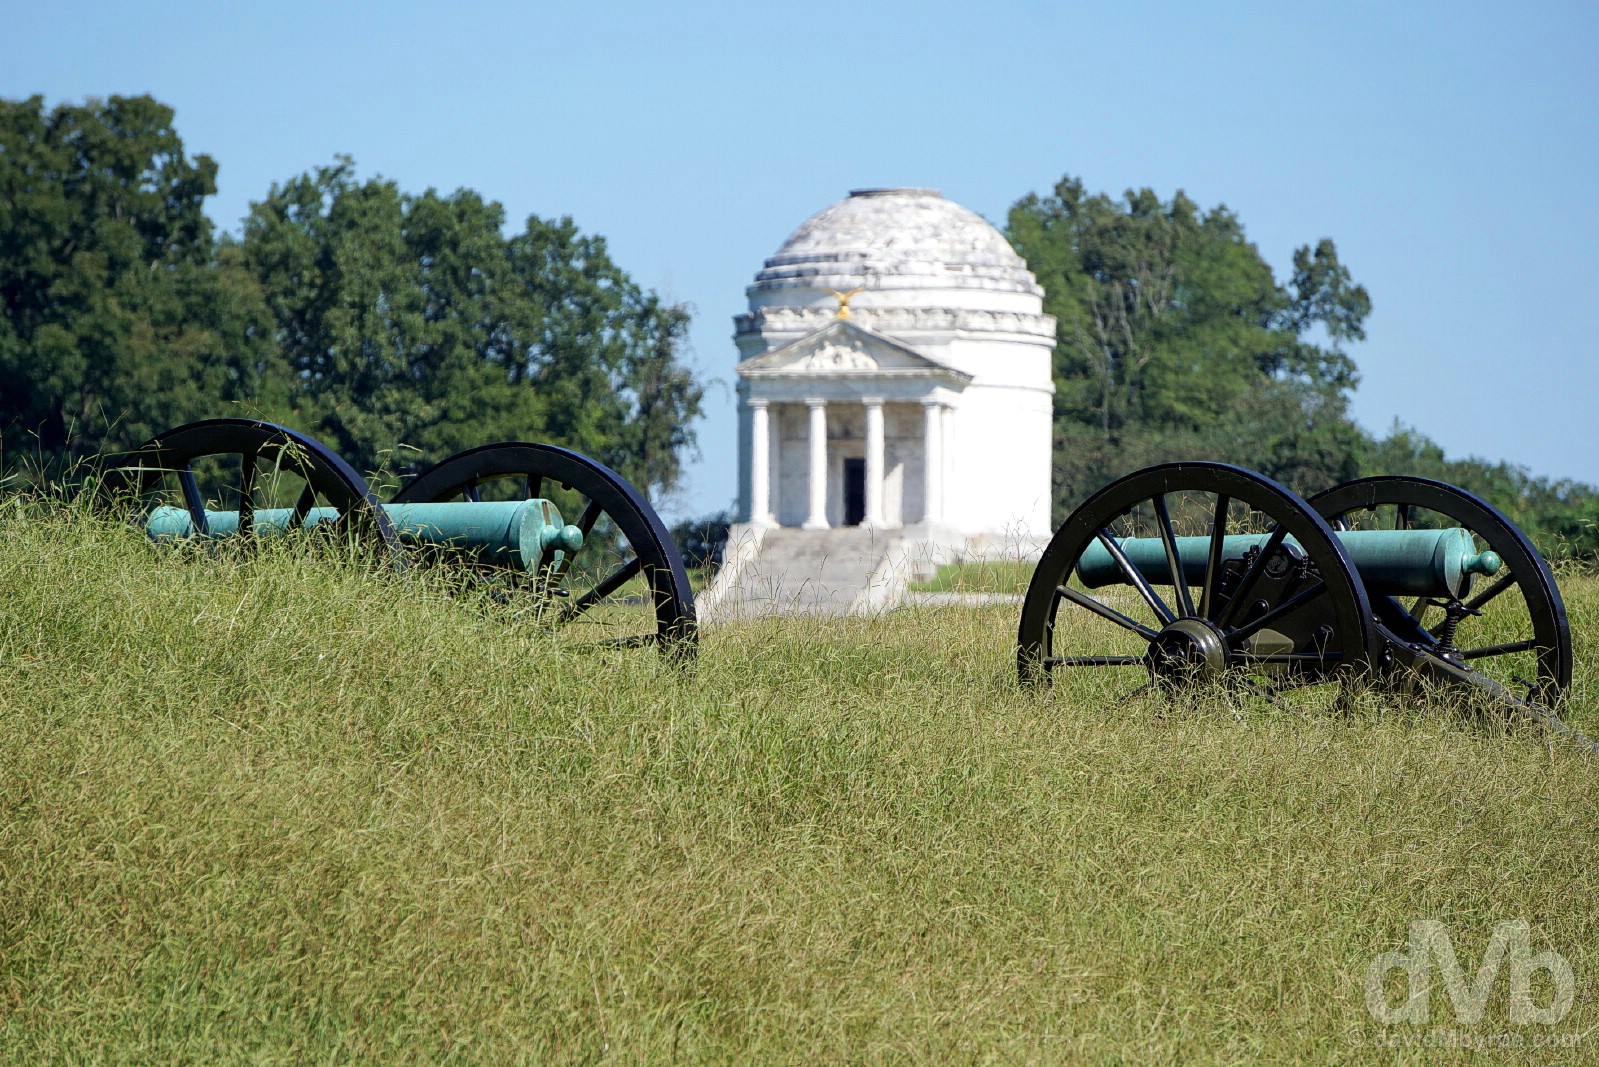 Vicksburg National Military Park, Vicksburg, Mississippi, USA. September 20, 2016.